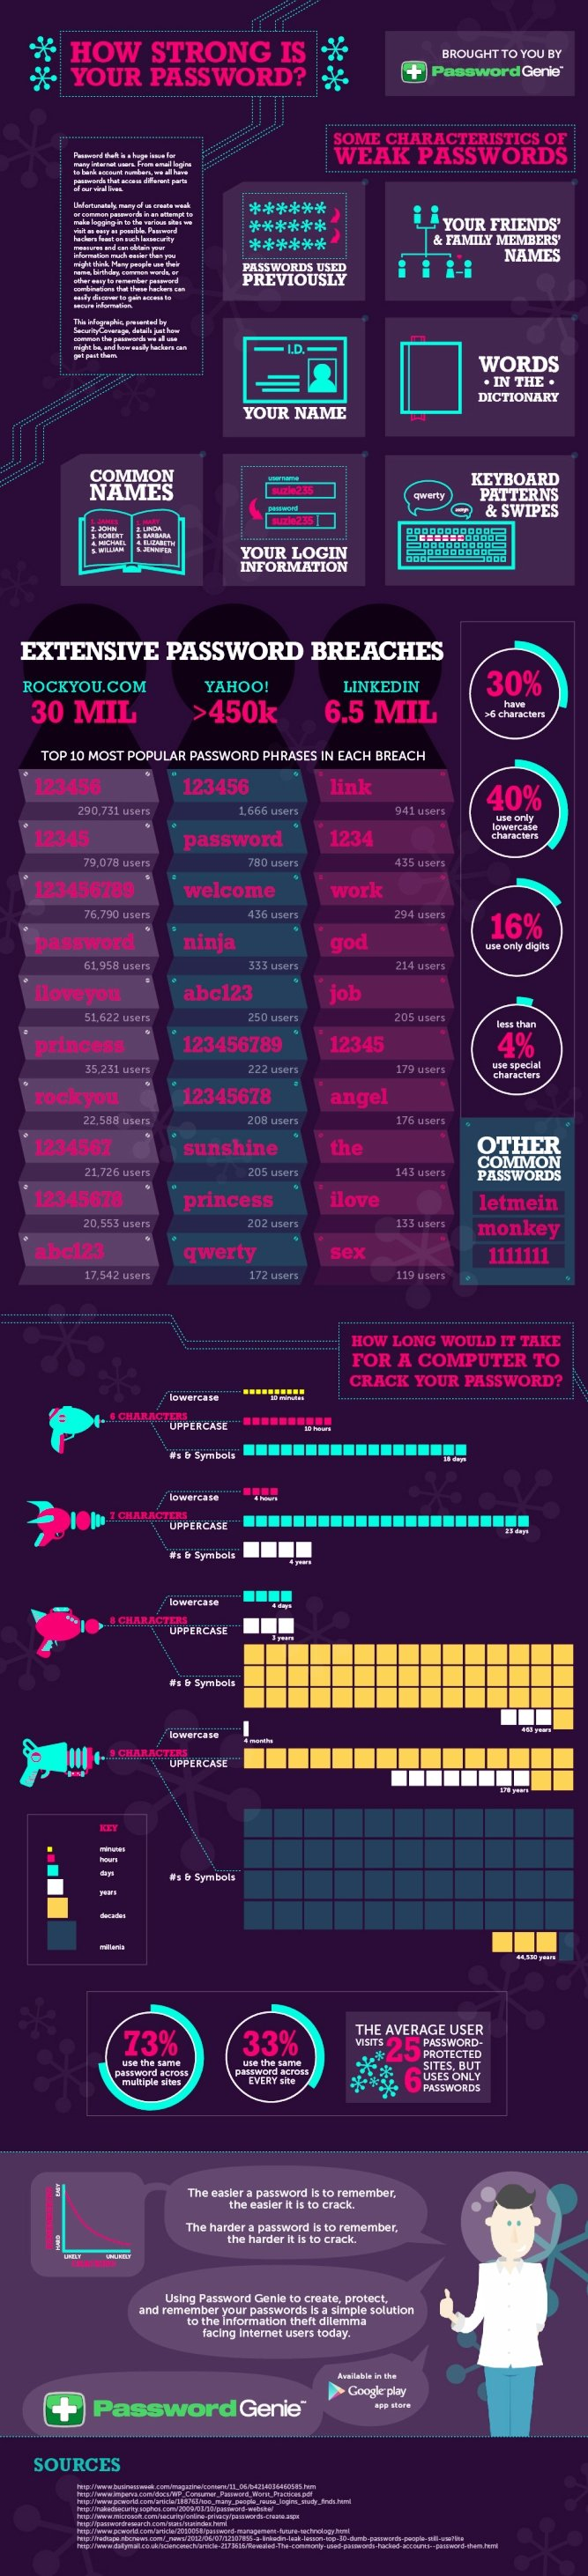 How strong is your password #infographic